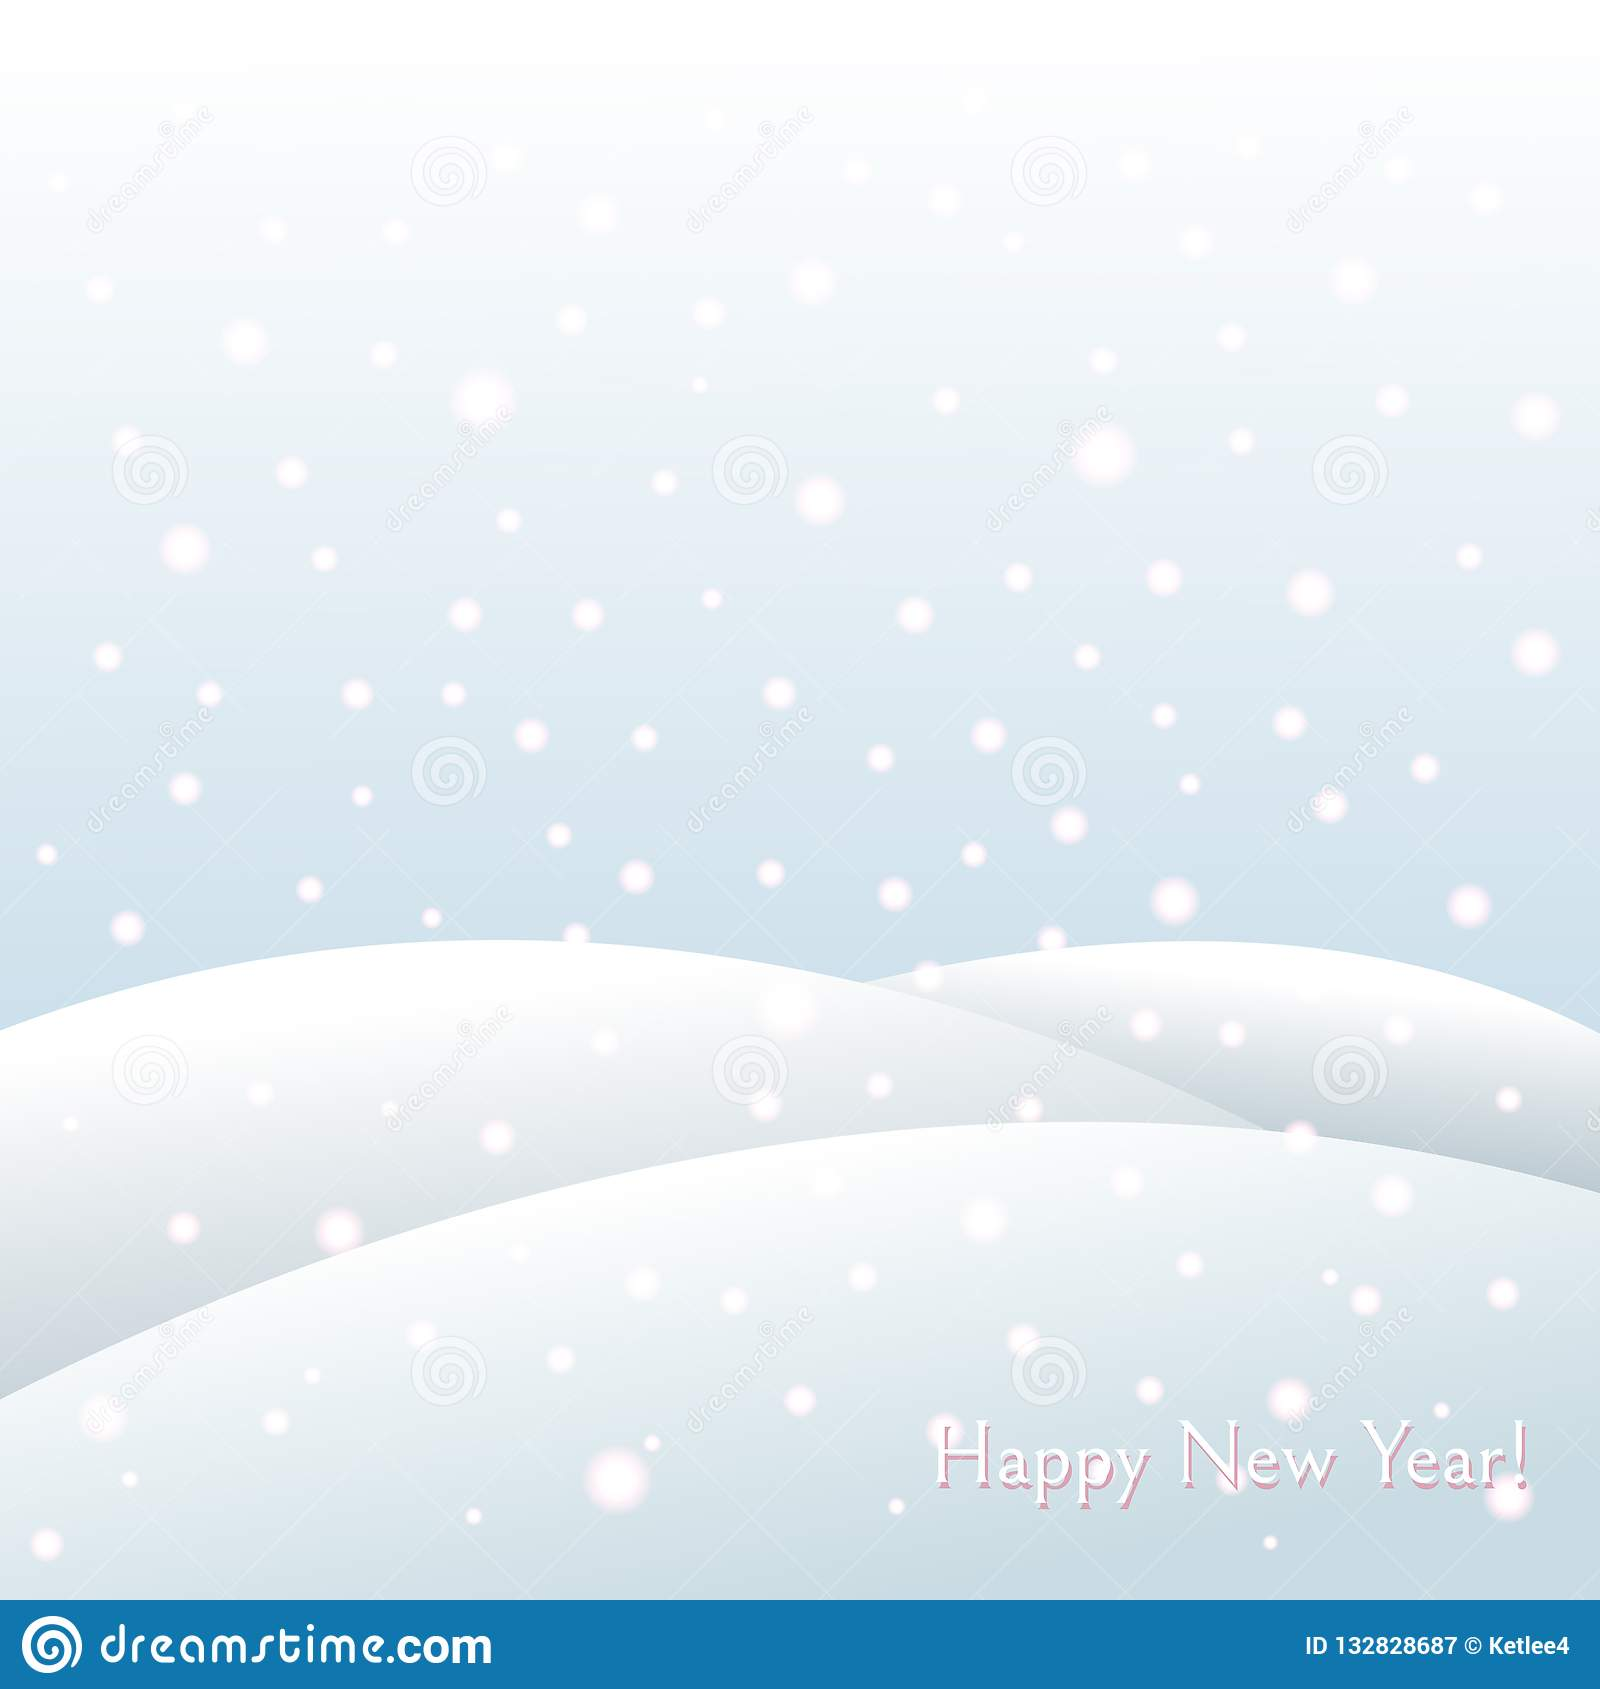 Winter holiday background on New Year and Christmas Snowdrifts, falling snowflakes Winter frosty landscape